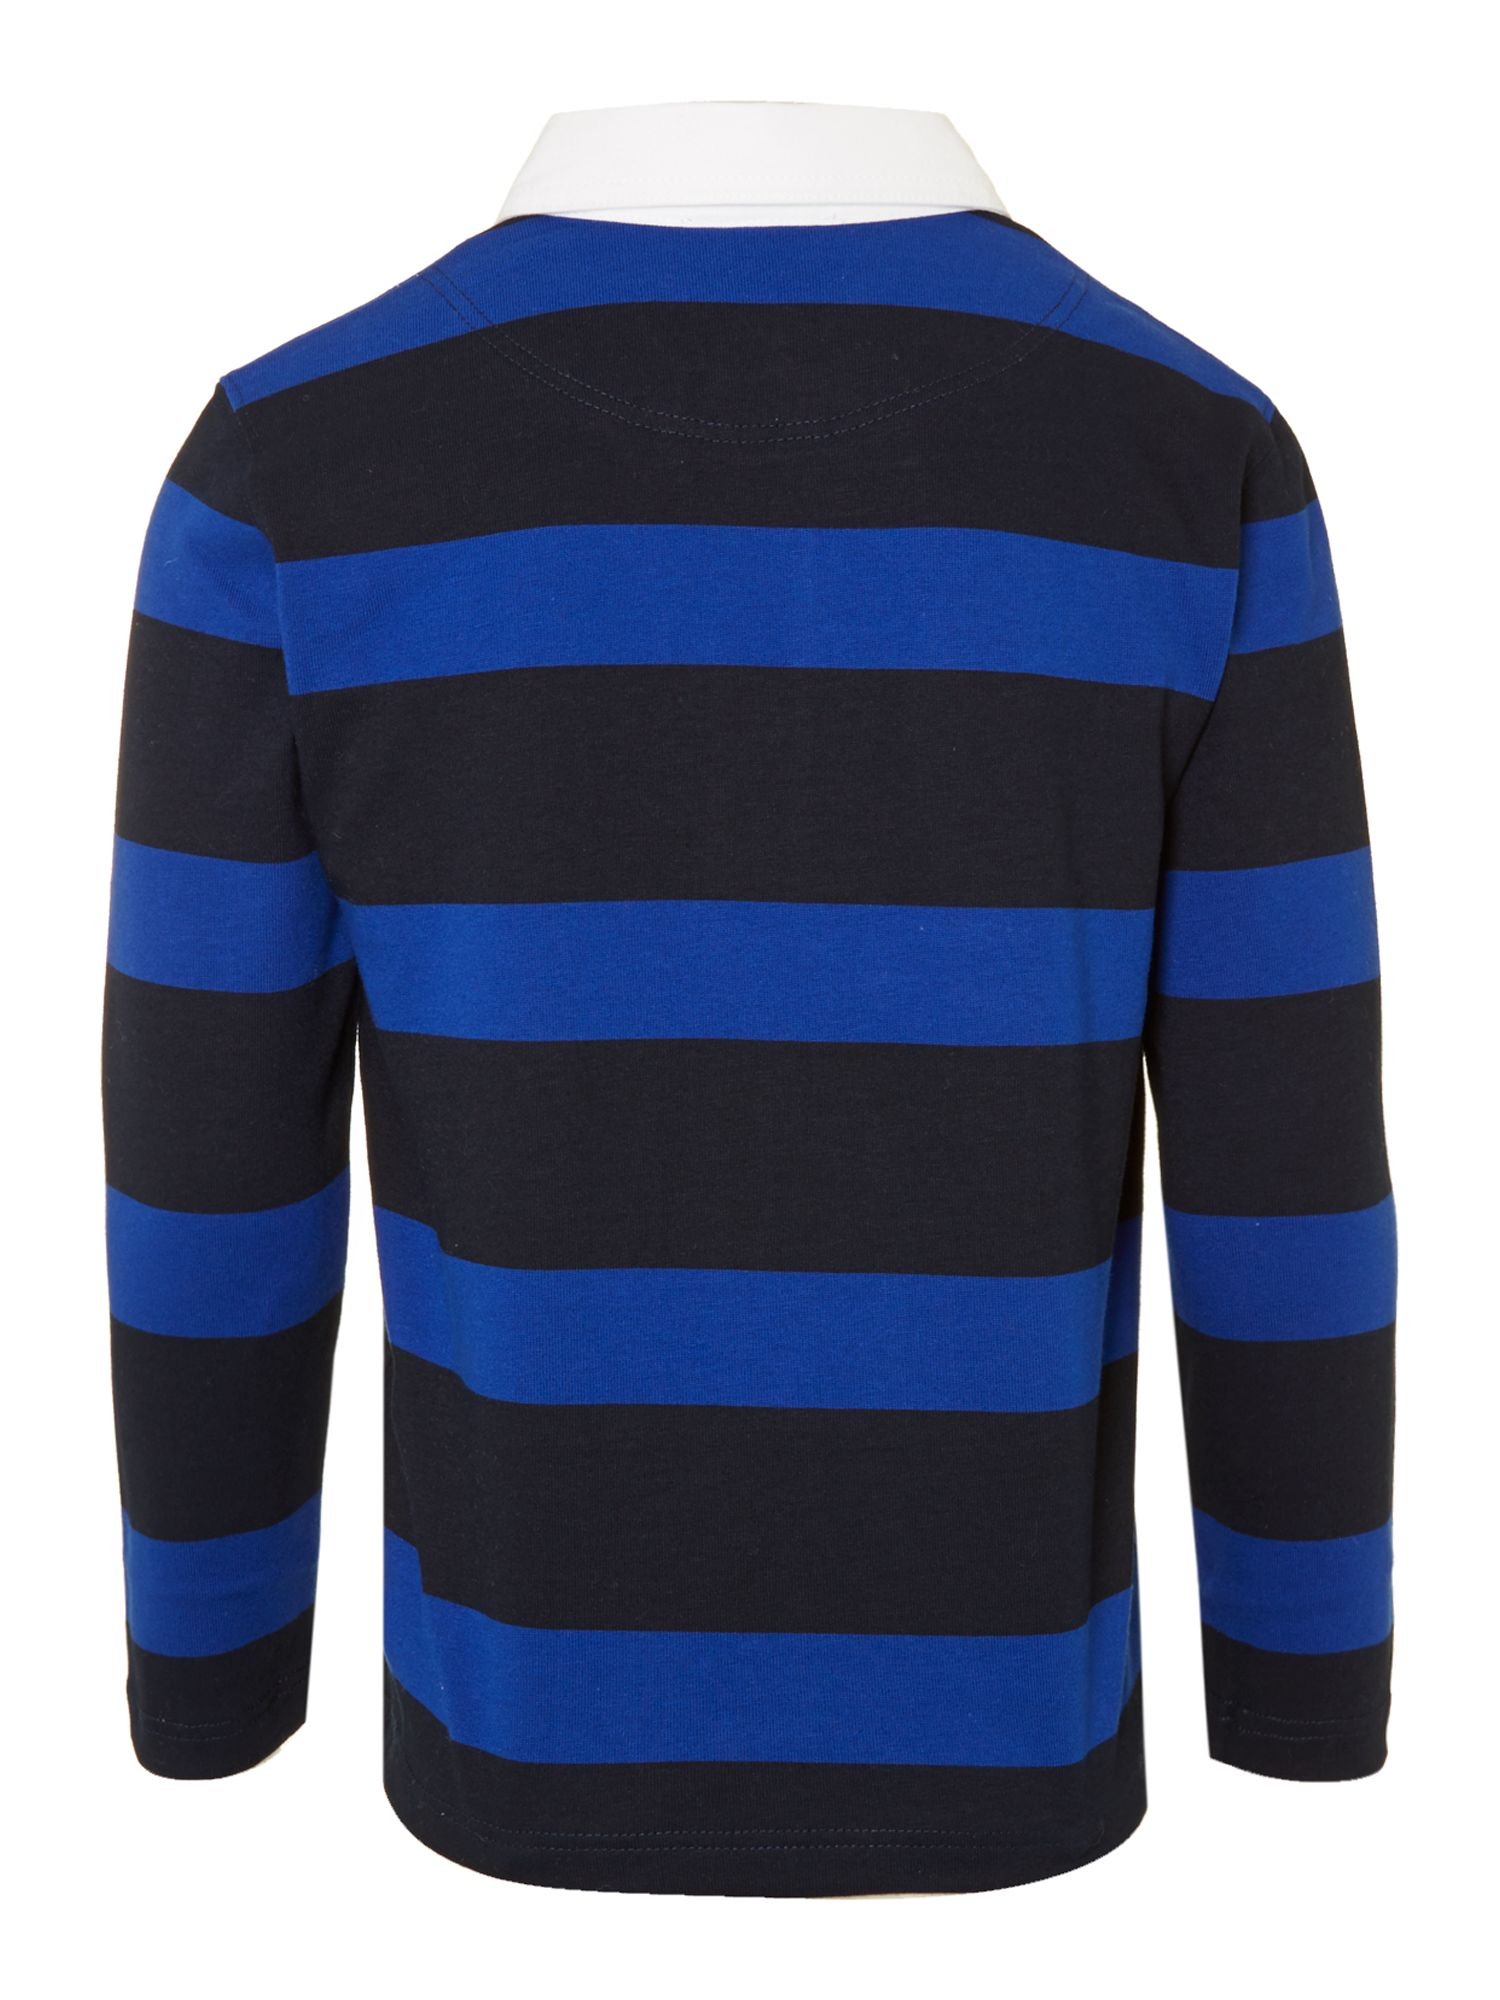 Boy`s jersey striped polo